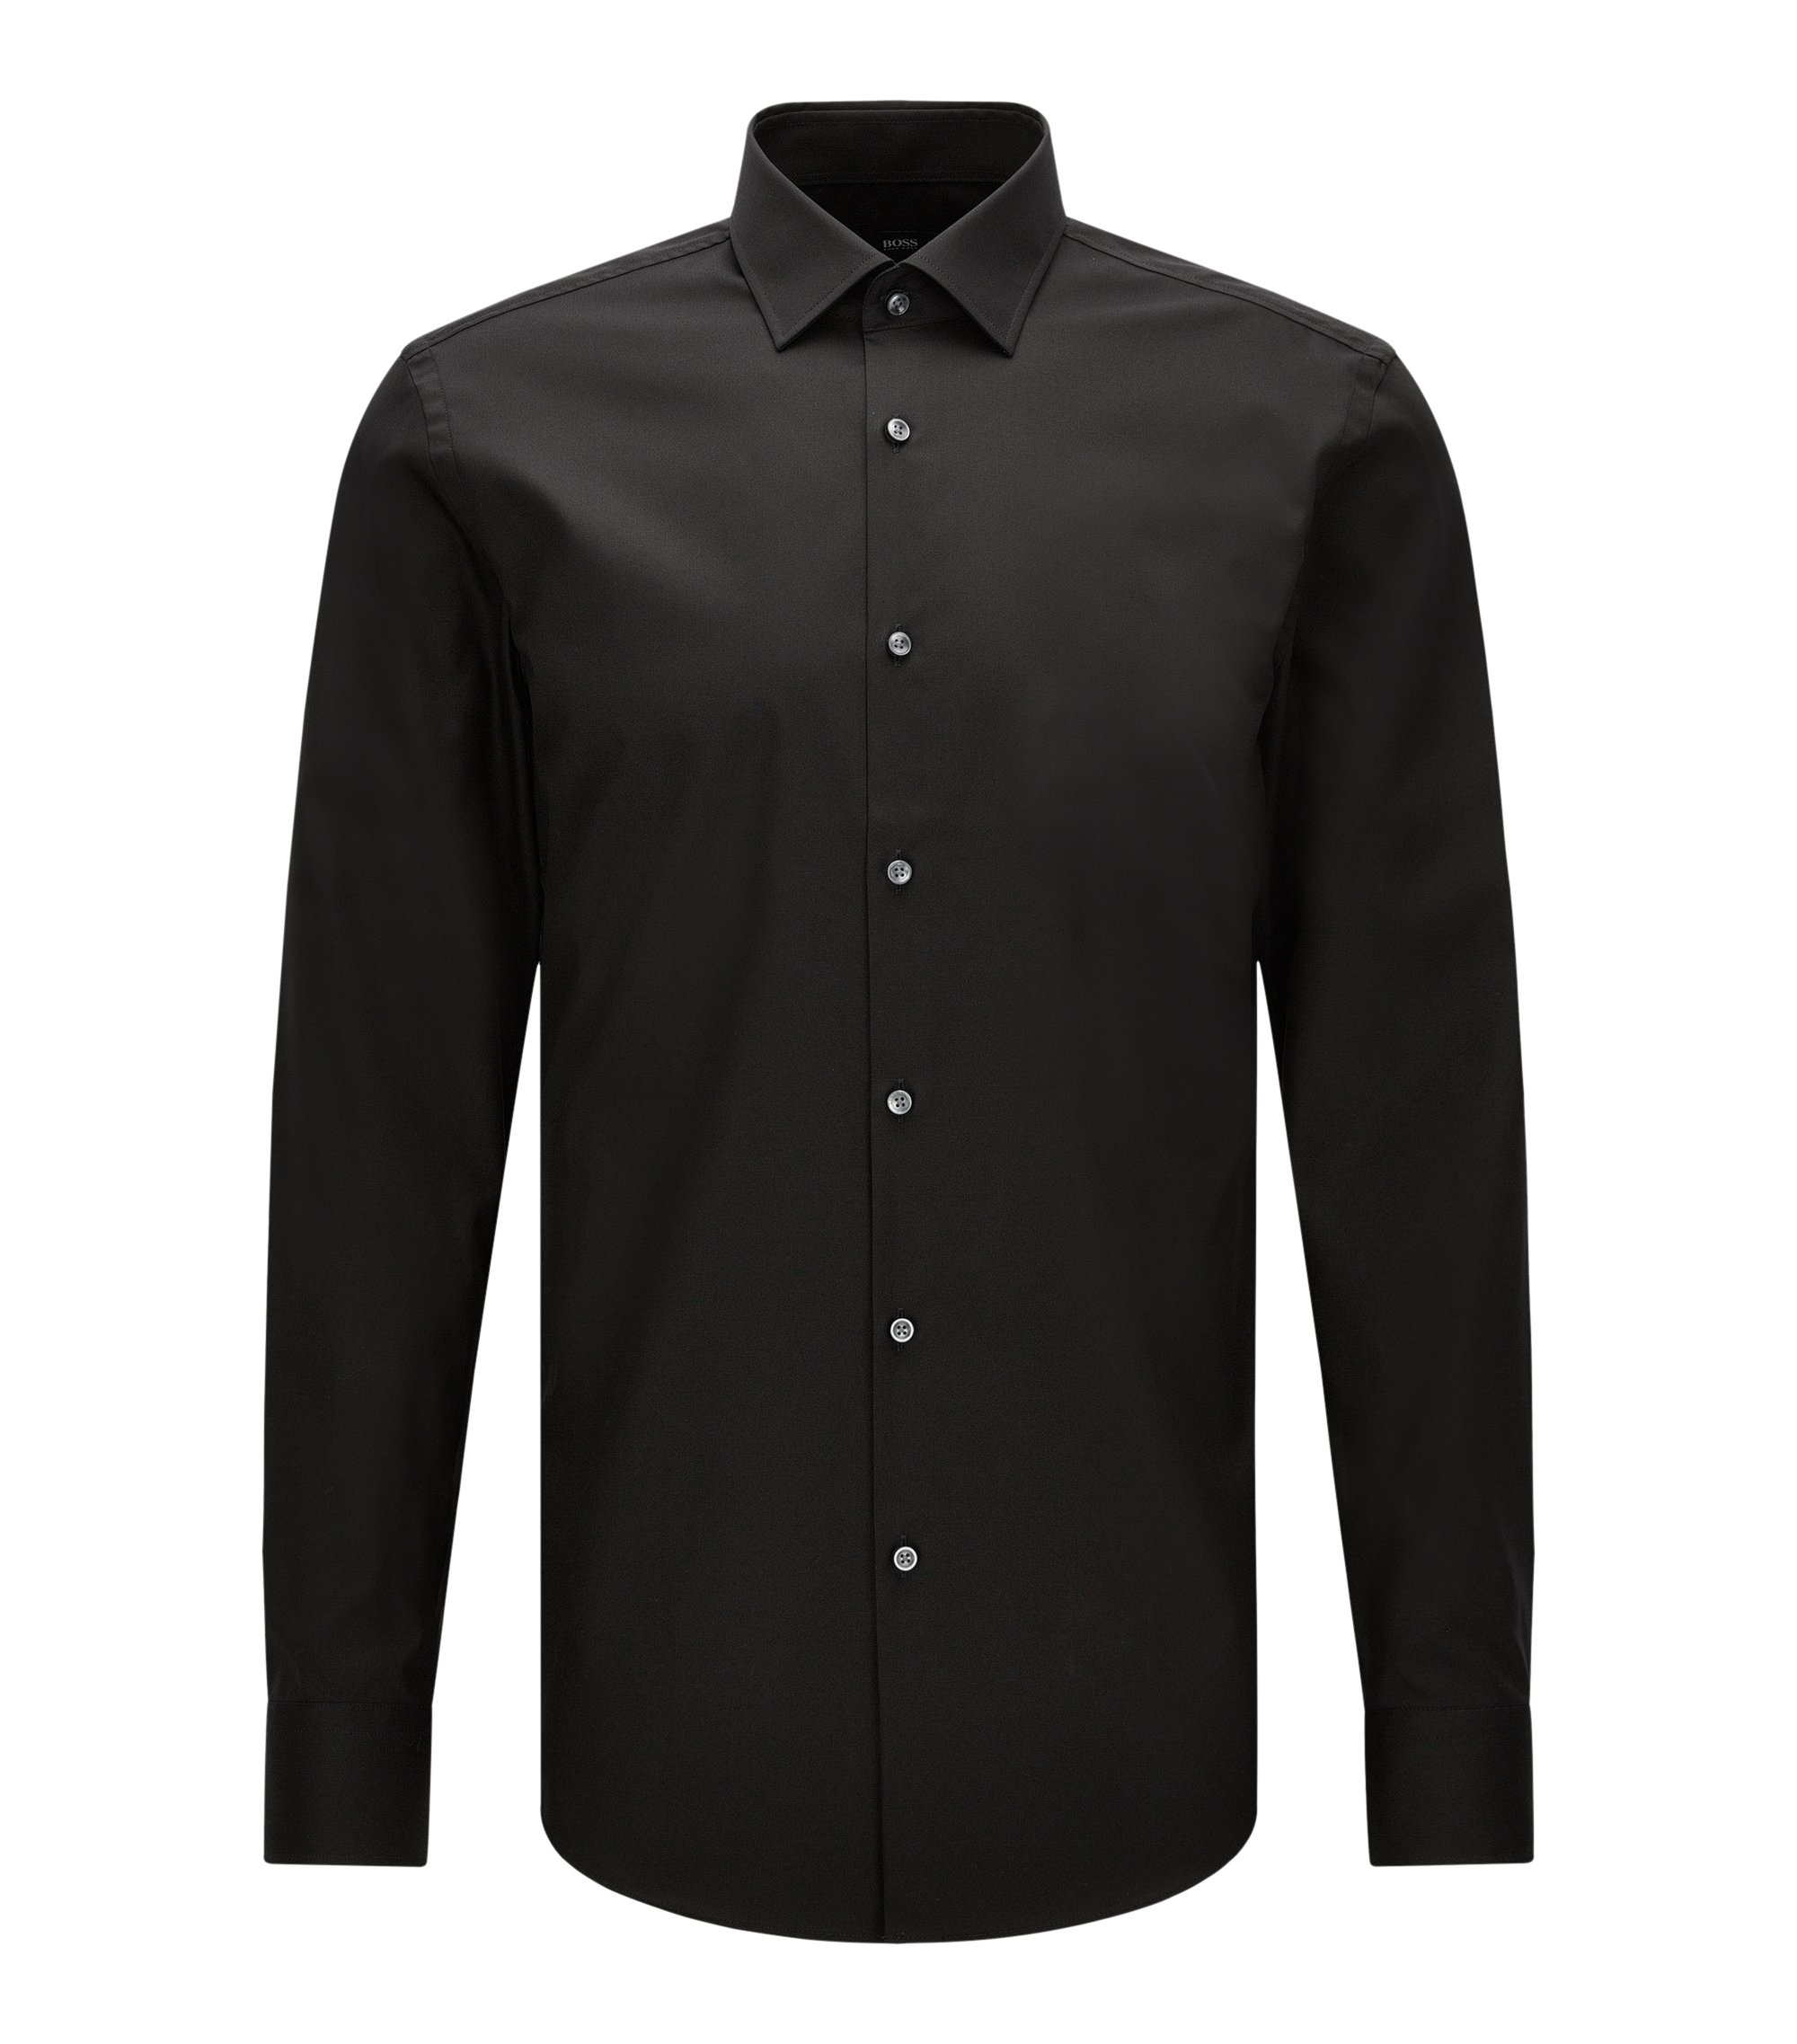 Easy-Iron Italian Cotton Dress Shirt, Slim Fit | Jenno , Black